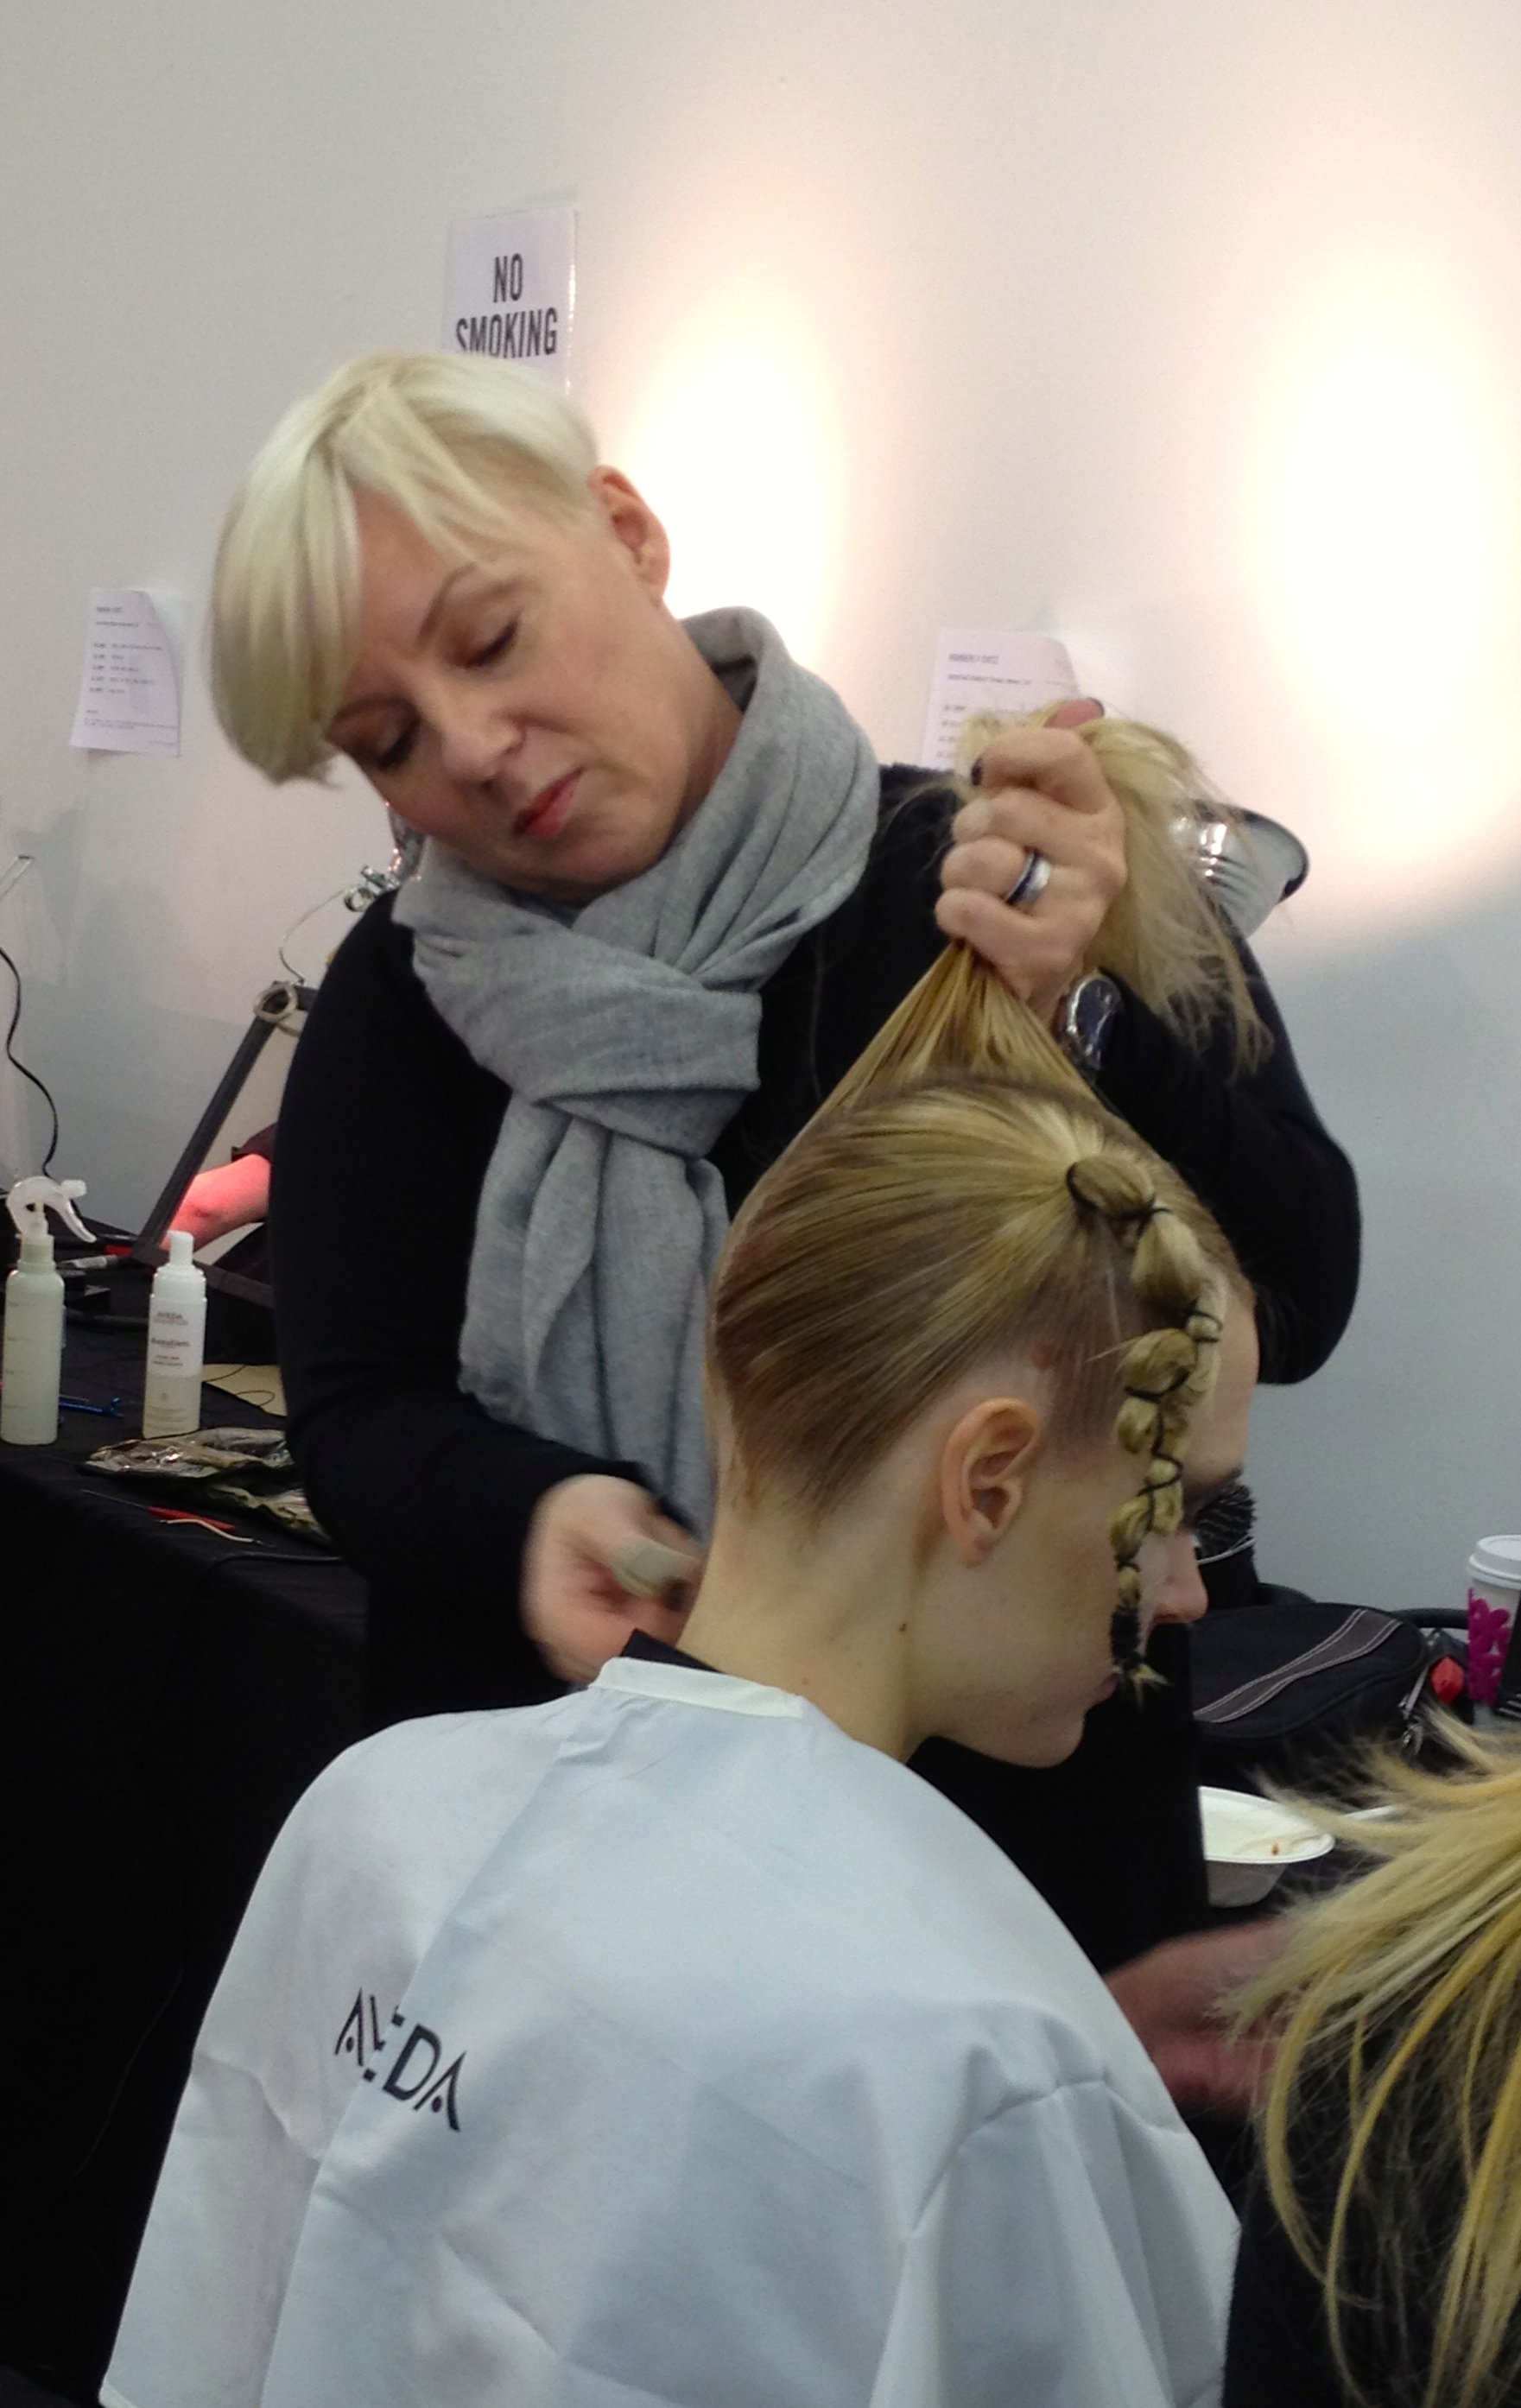 Antoinette Beenders creating shield of hair for Kimberly Ovitz show.